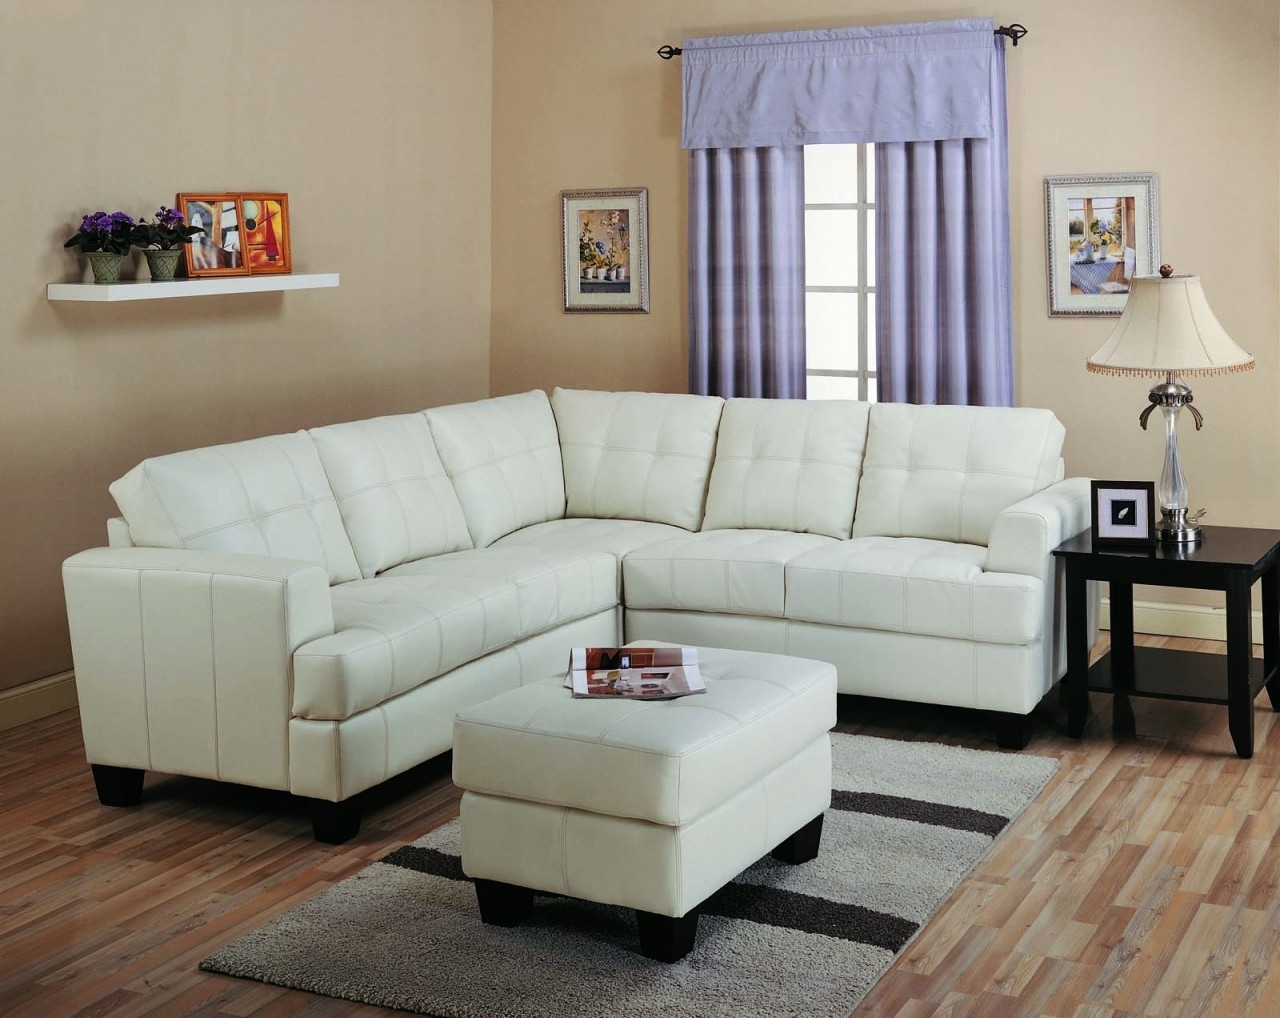 Canada Sectional Sofas For Small Spaces Regarding Trendy Furniture (View 7 of 15)